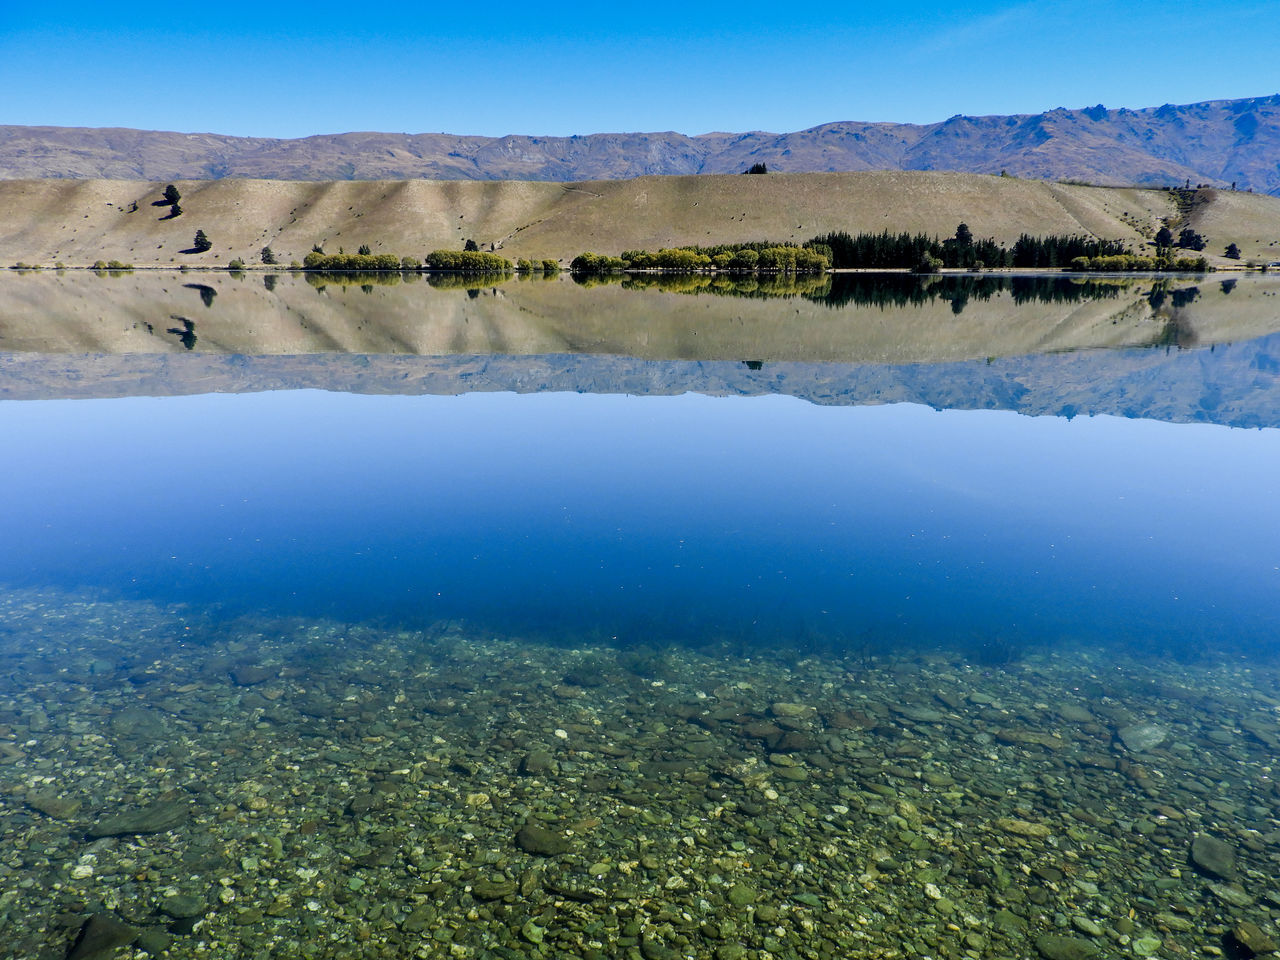 A fetching still lake scene, taken as I felt captured by the calmness of the water. Beauty In Nature Blue Clear Sky Day Hills Lake Landscape Nature No People Outdoors Pebbles Reflection Reflection Scenics Sky Tree Water